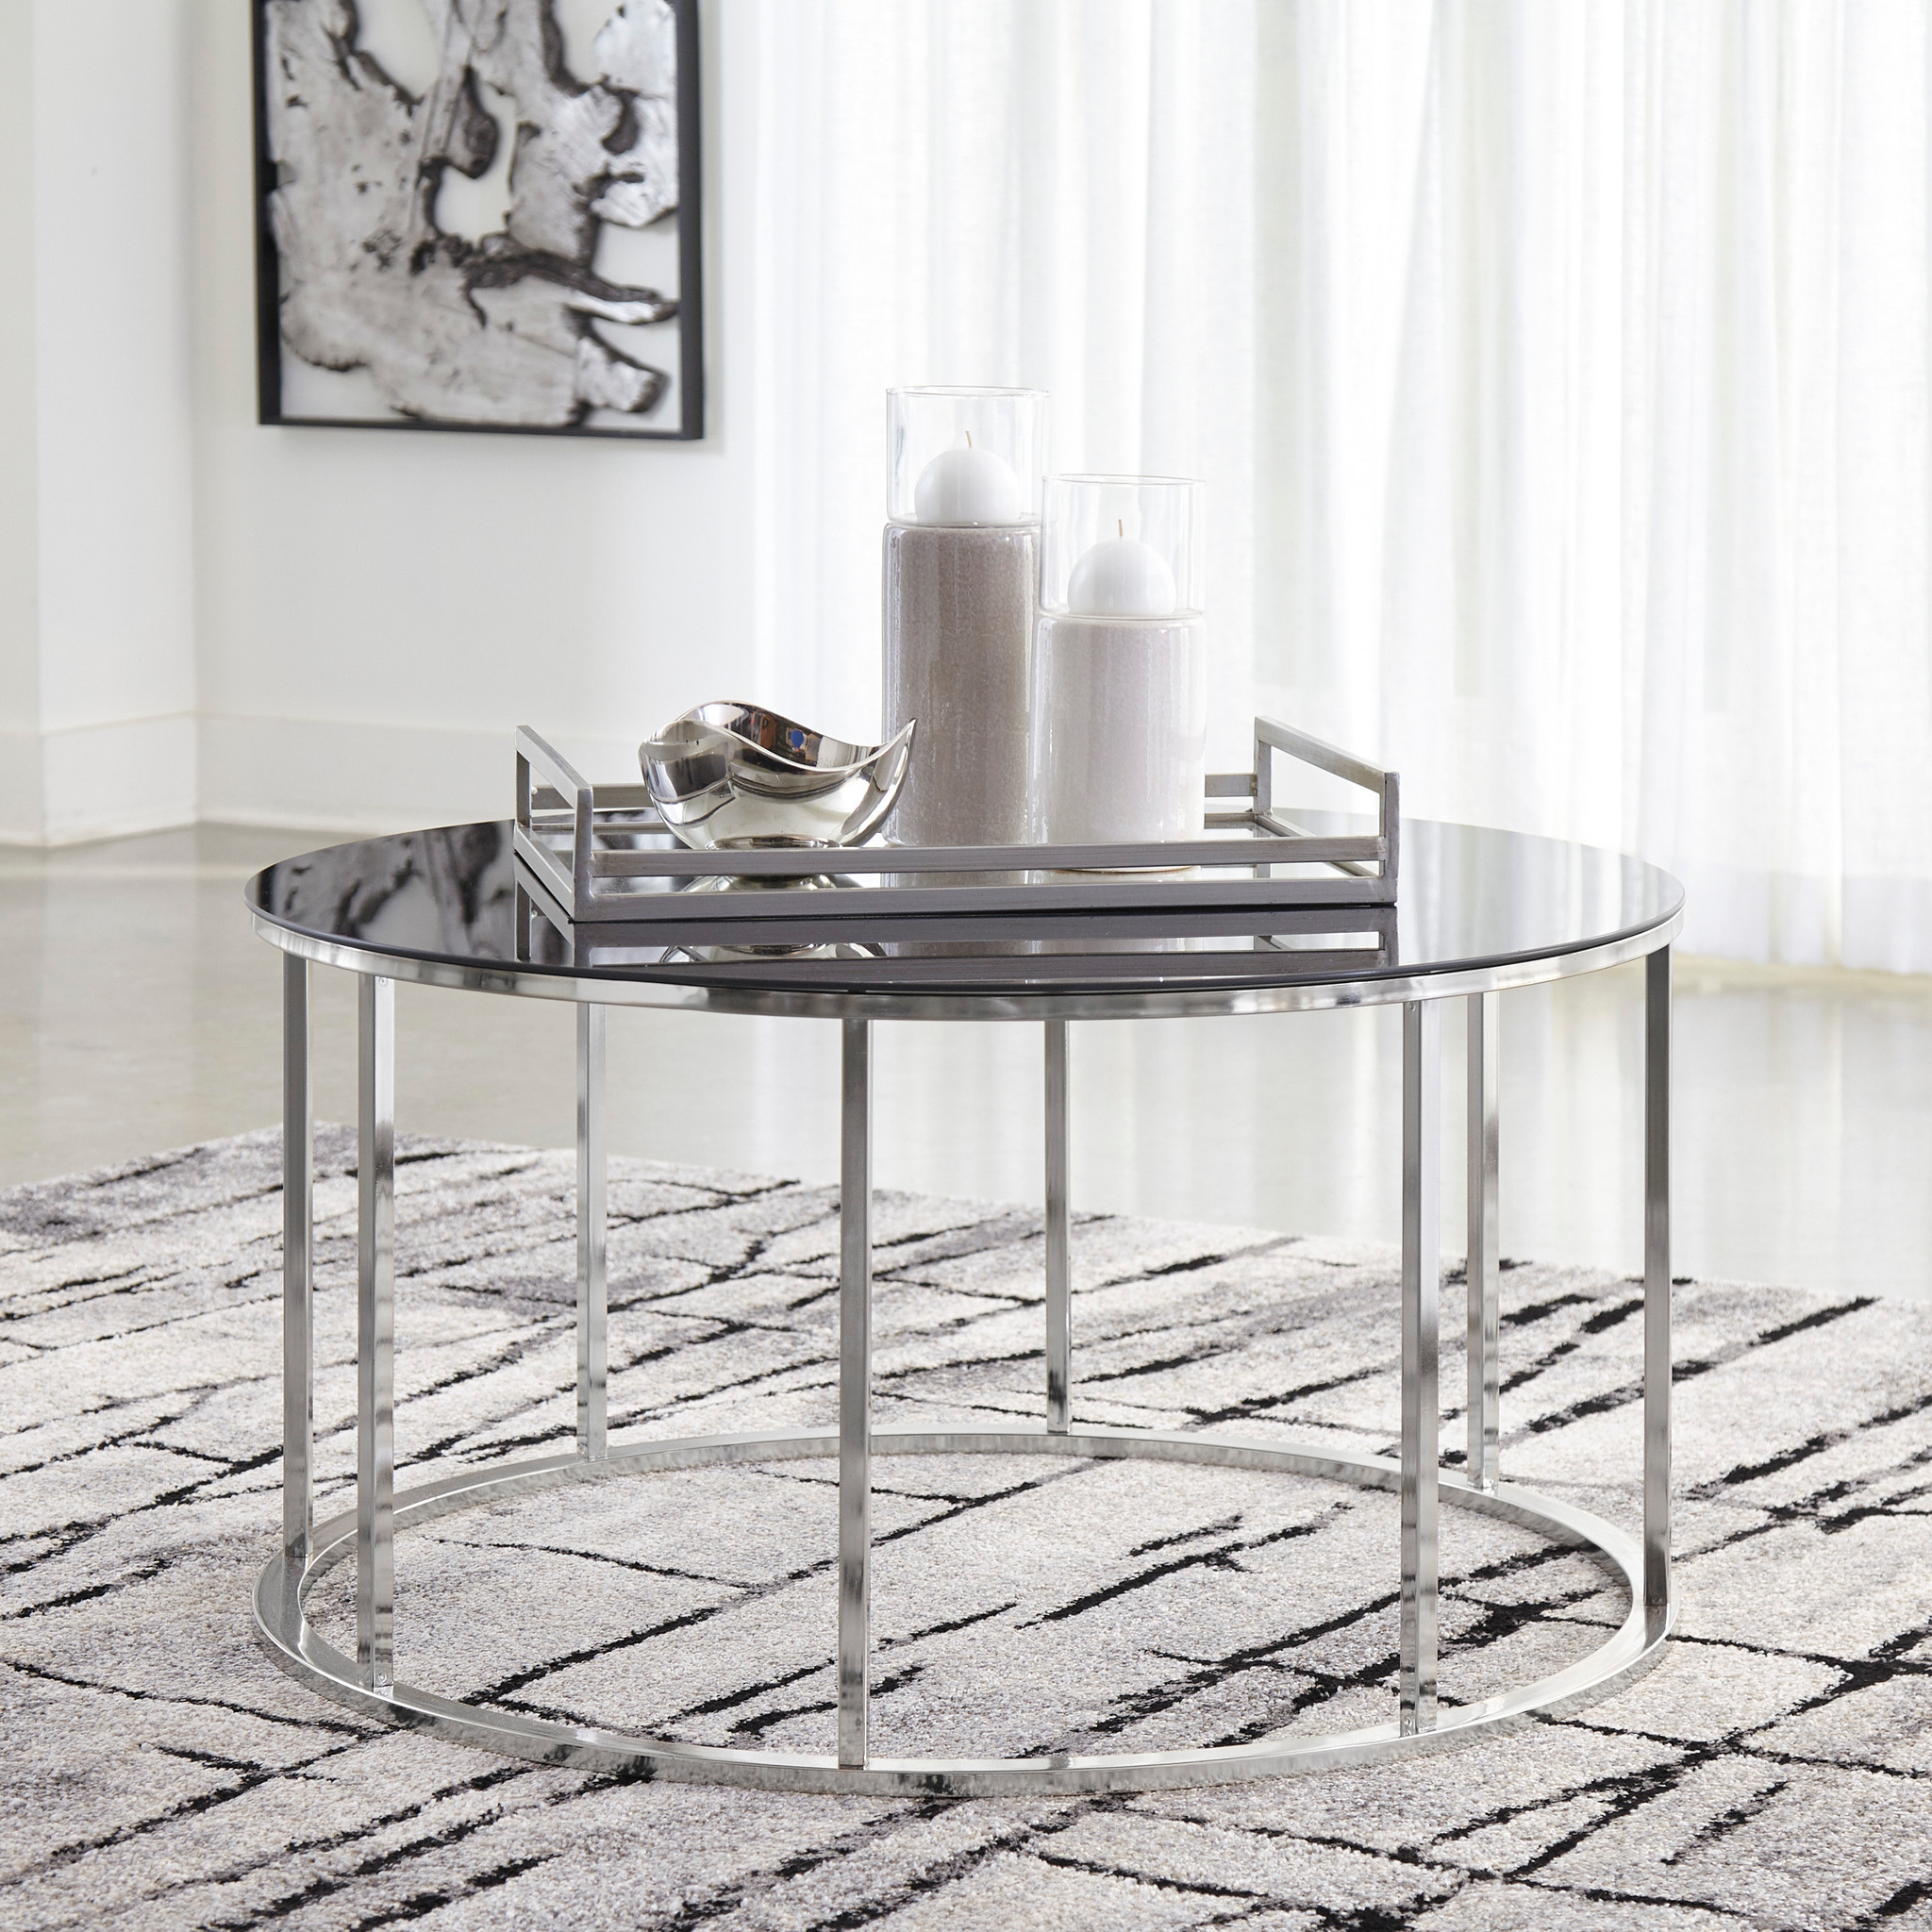 Super Contemporary Clenco Occasional Cocktail Table In Tubular Steel And Tempered Glass Machost Co Dining Chair Design Ideas Machostcouk